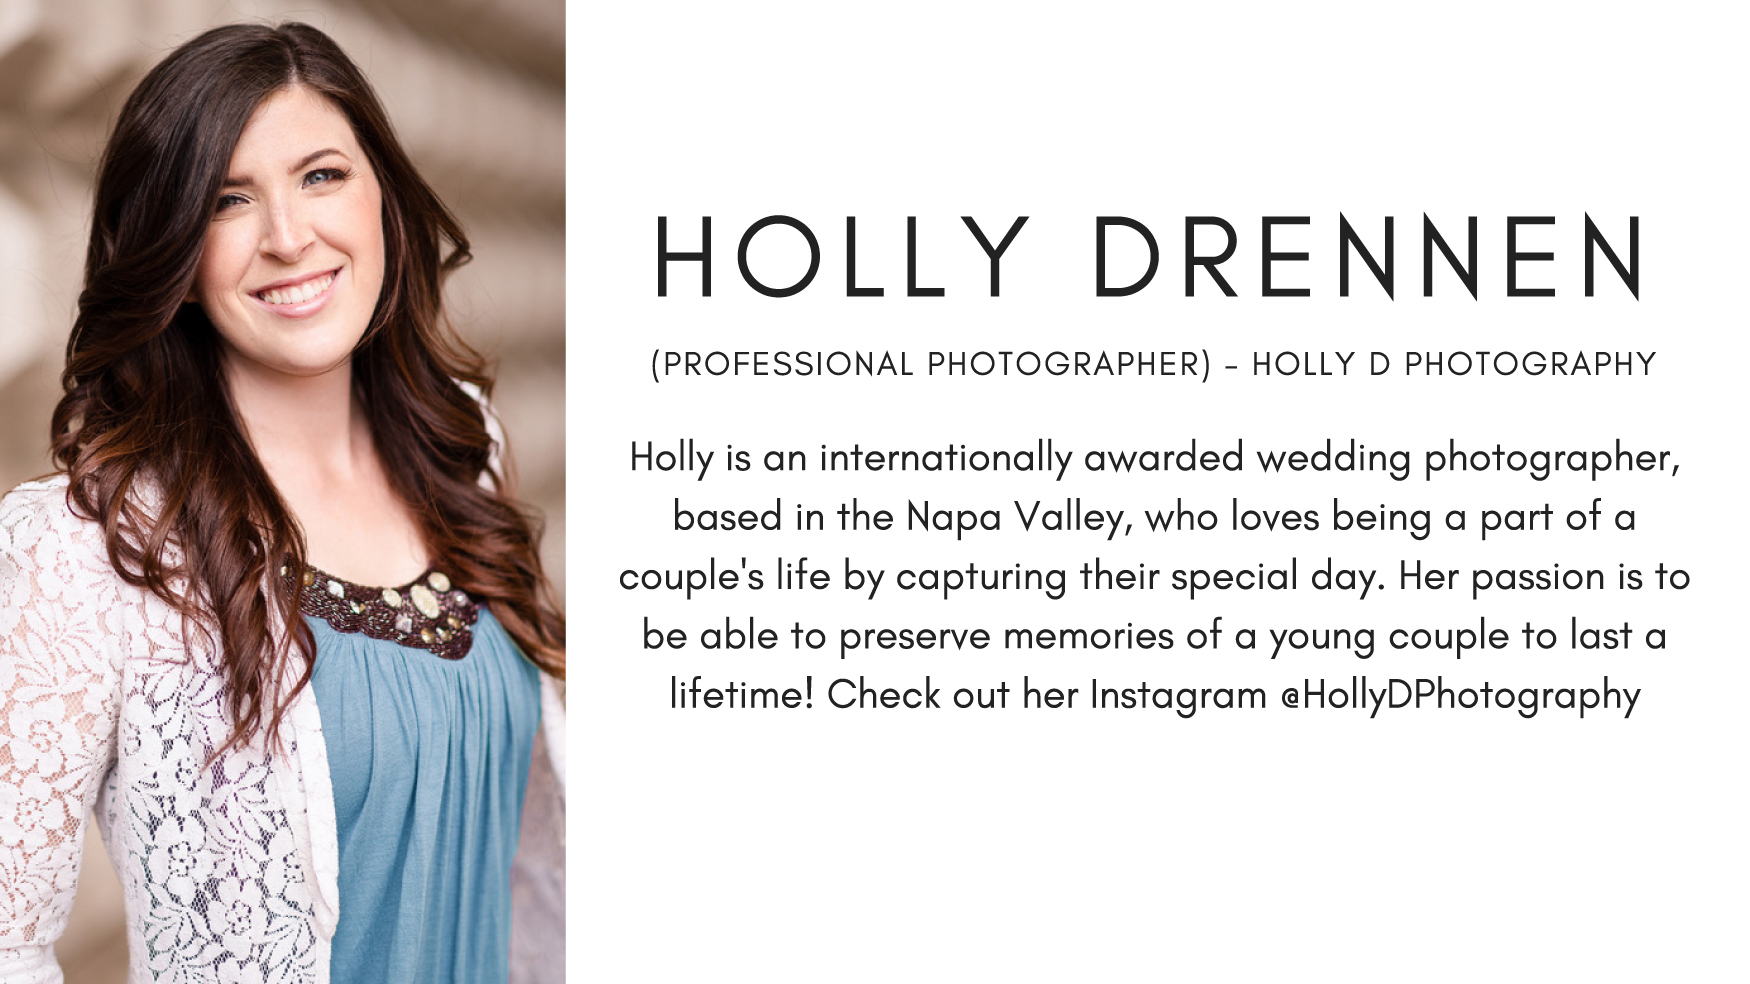 Holly Drennen (Photographer) - Holly D Photography. Holly is an internationally awarded wedding photographer, based in the Napa Valley, who loves being a part of a couple's life by capturing their special day. Her passion is to be able to preserve memories of a young couple to last a lifetime!